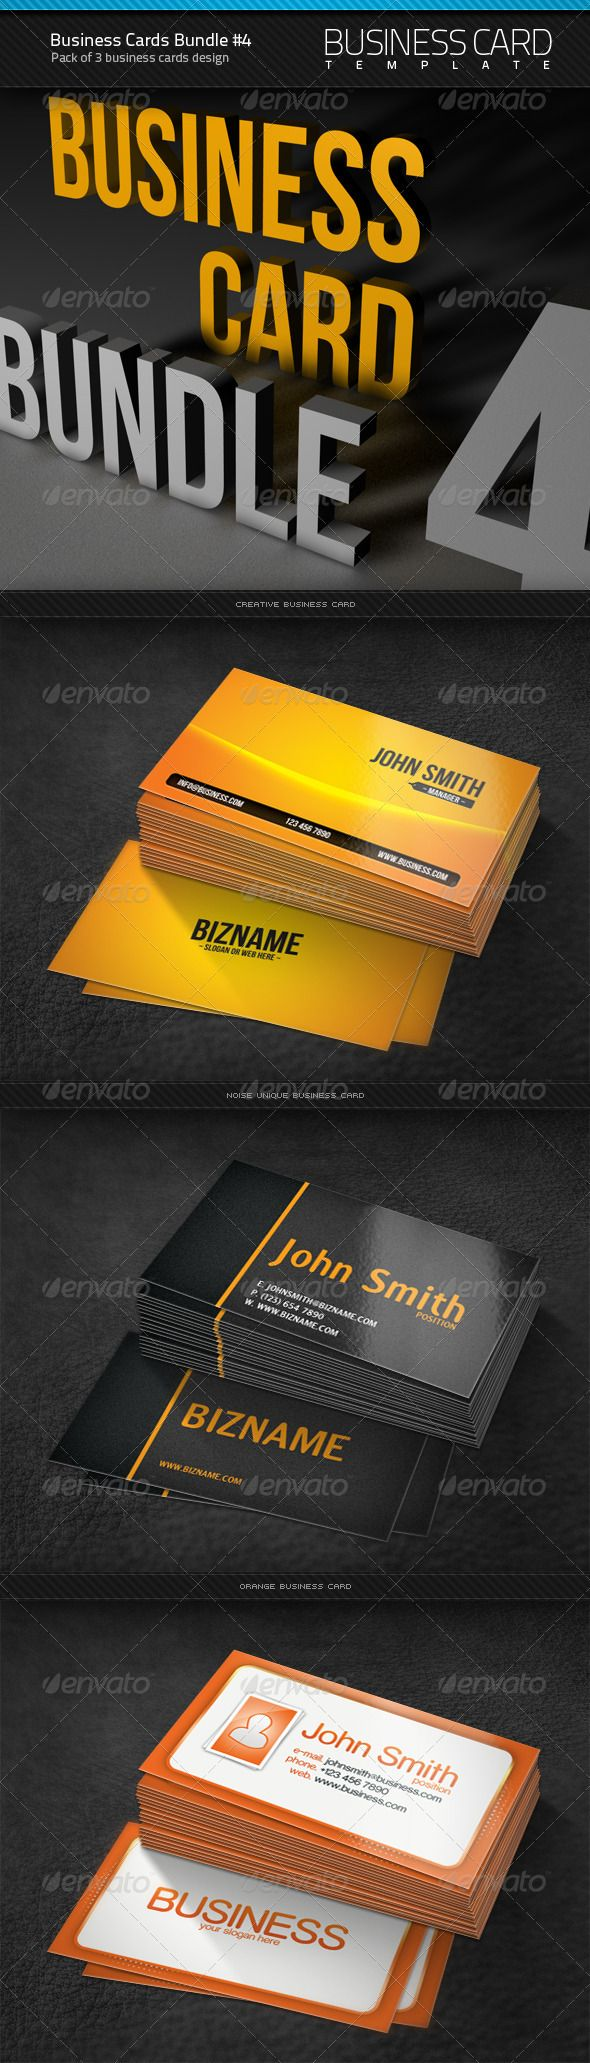 54 Best Business Card Designs Images On Pinterest Business Card